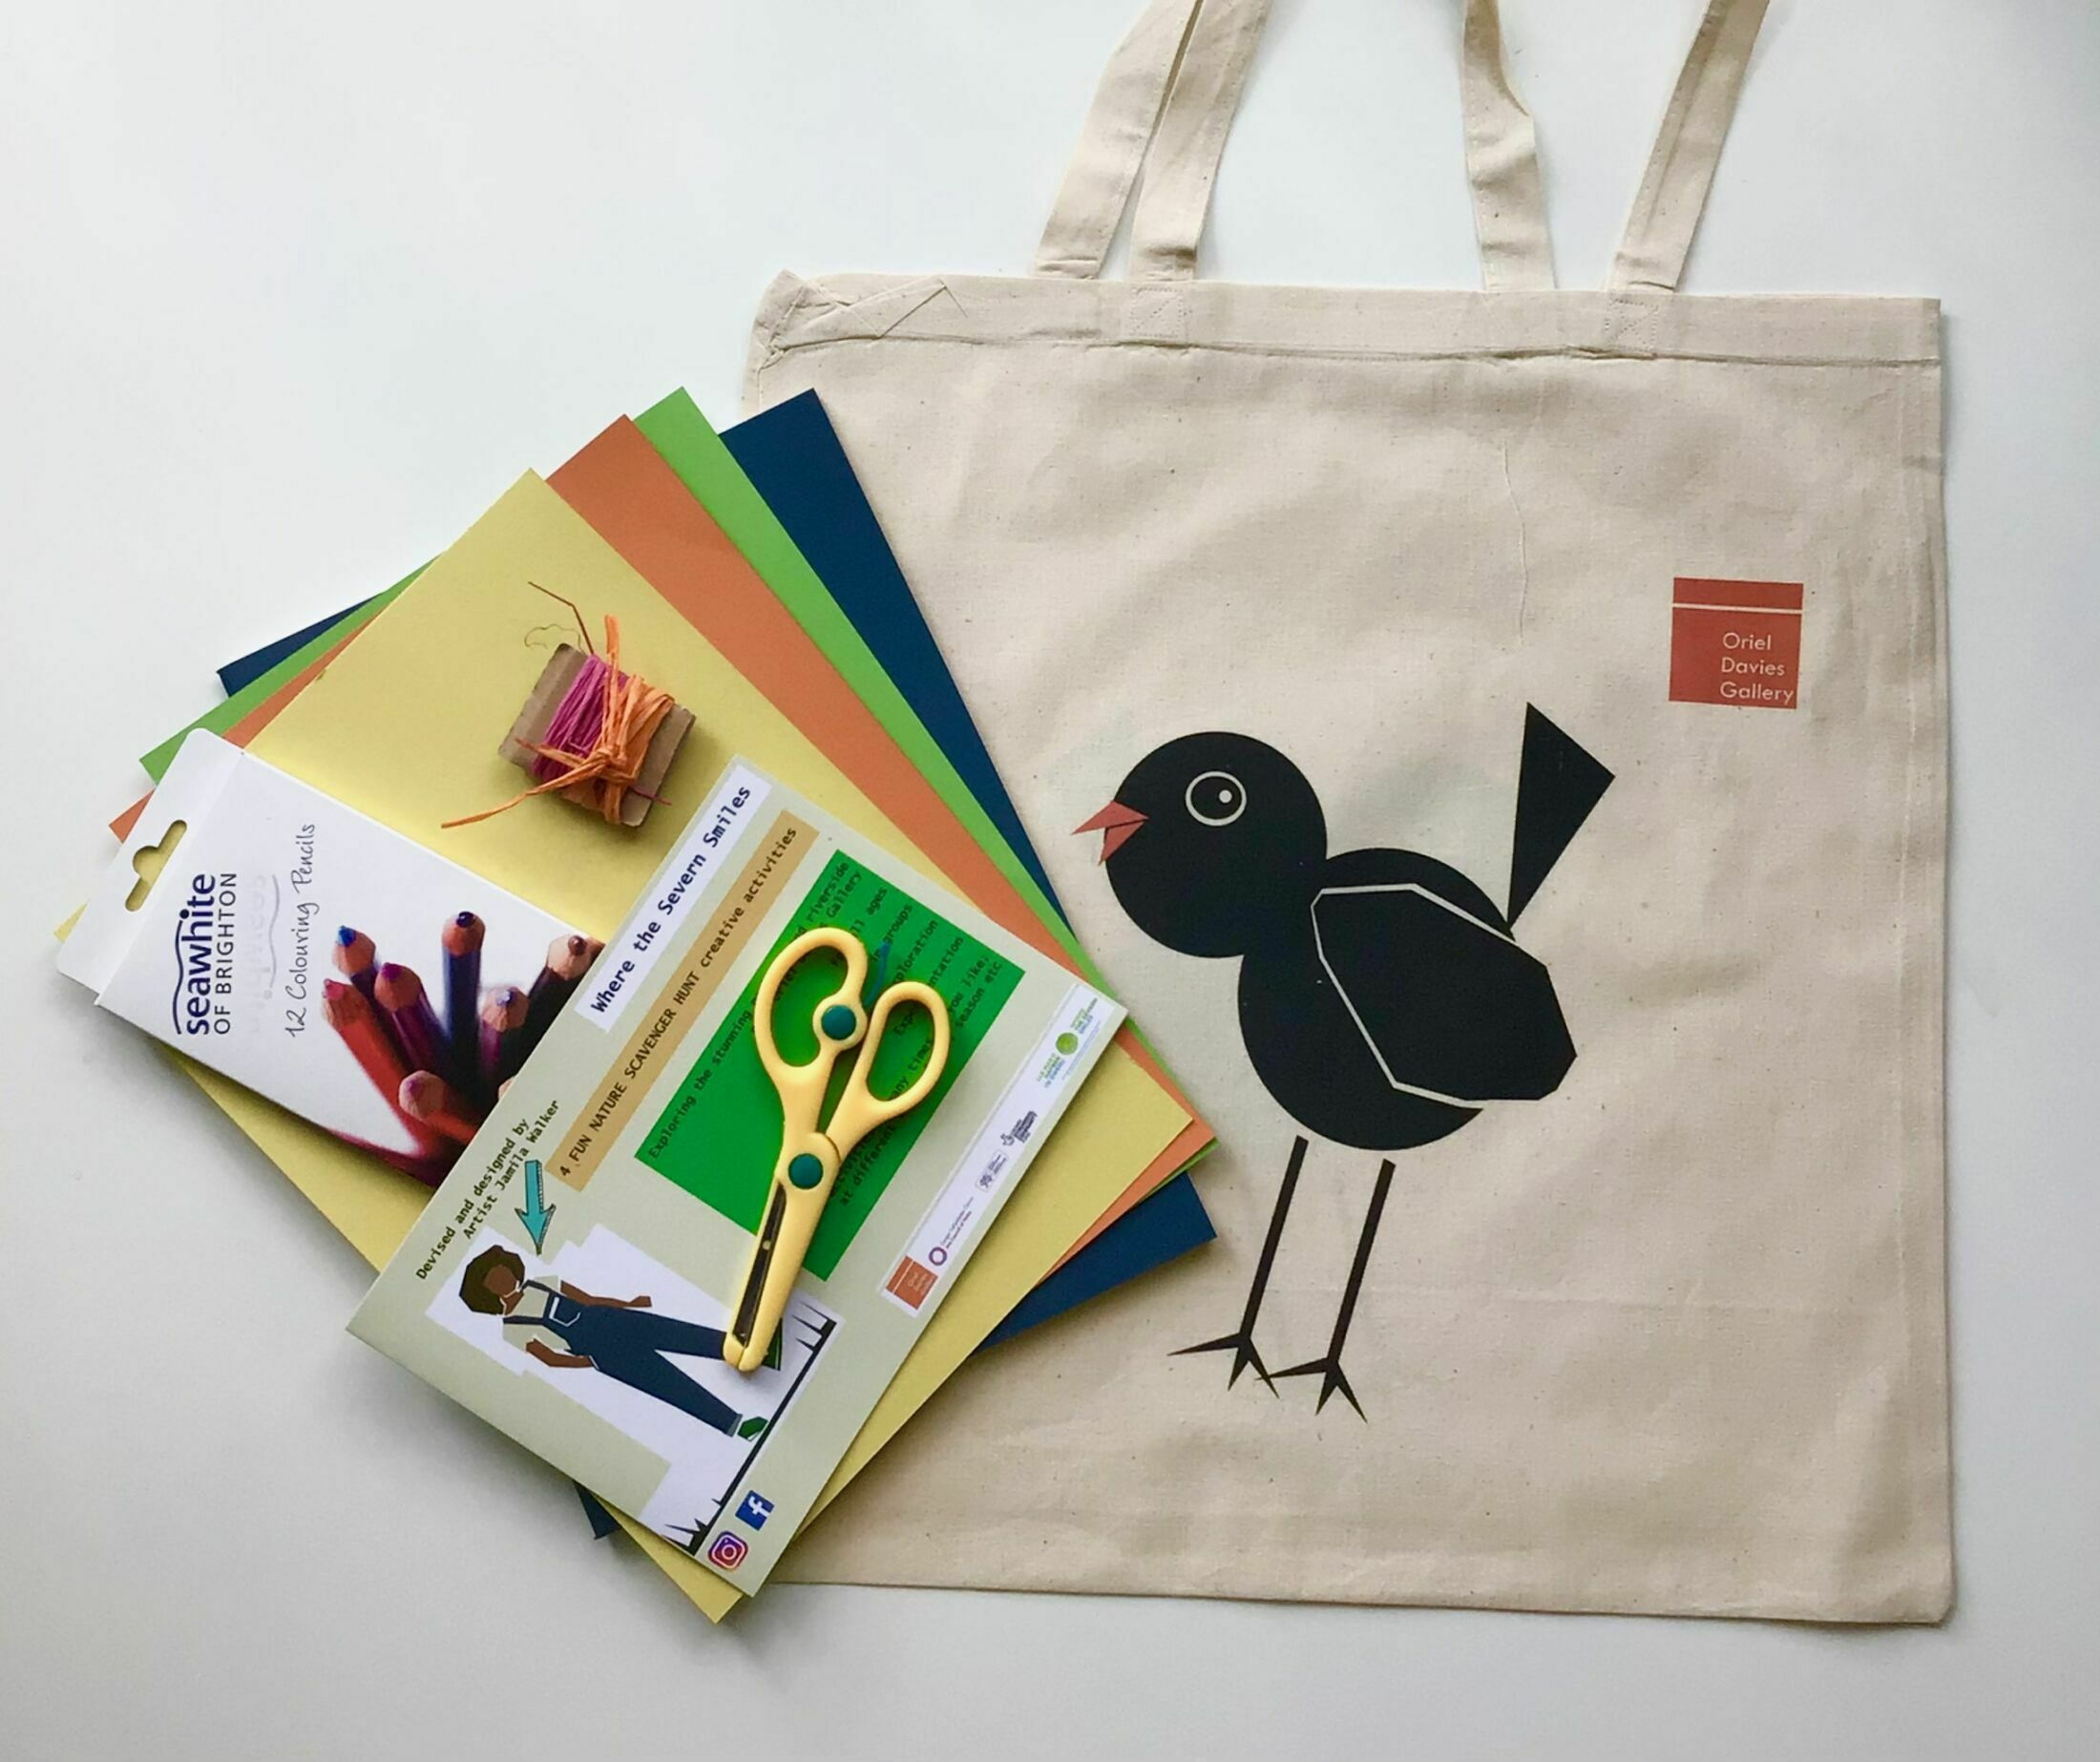 Nature Scavenger Hunt by Jamila Thomas come in a beautifully designed cotton tote bag.